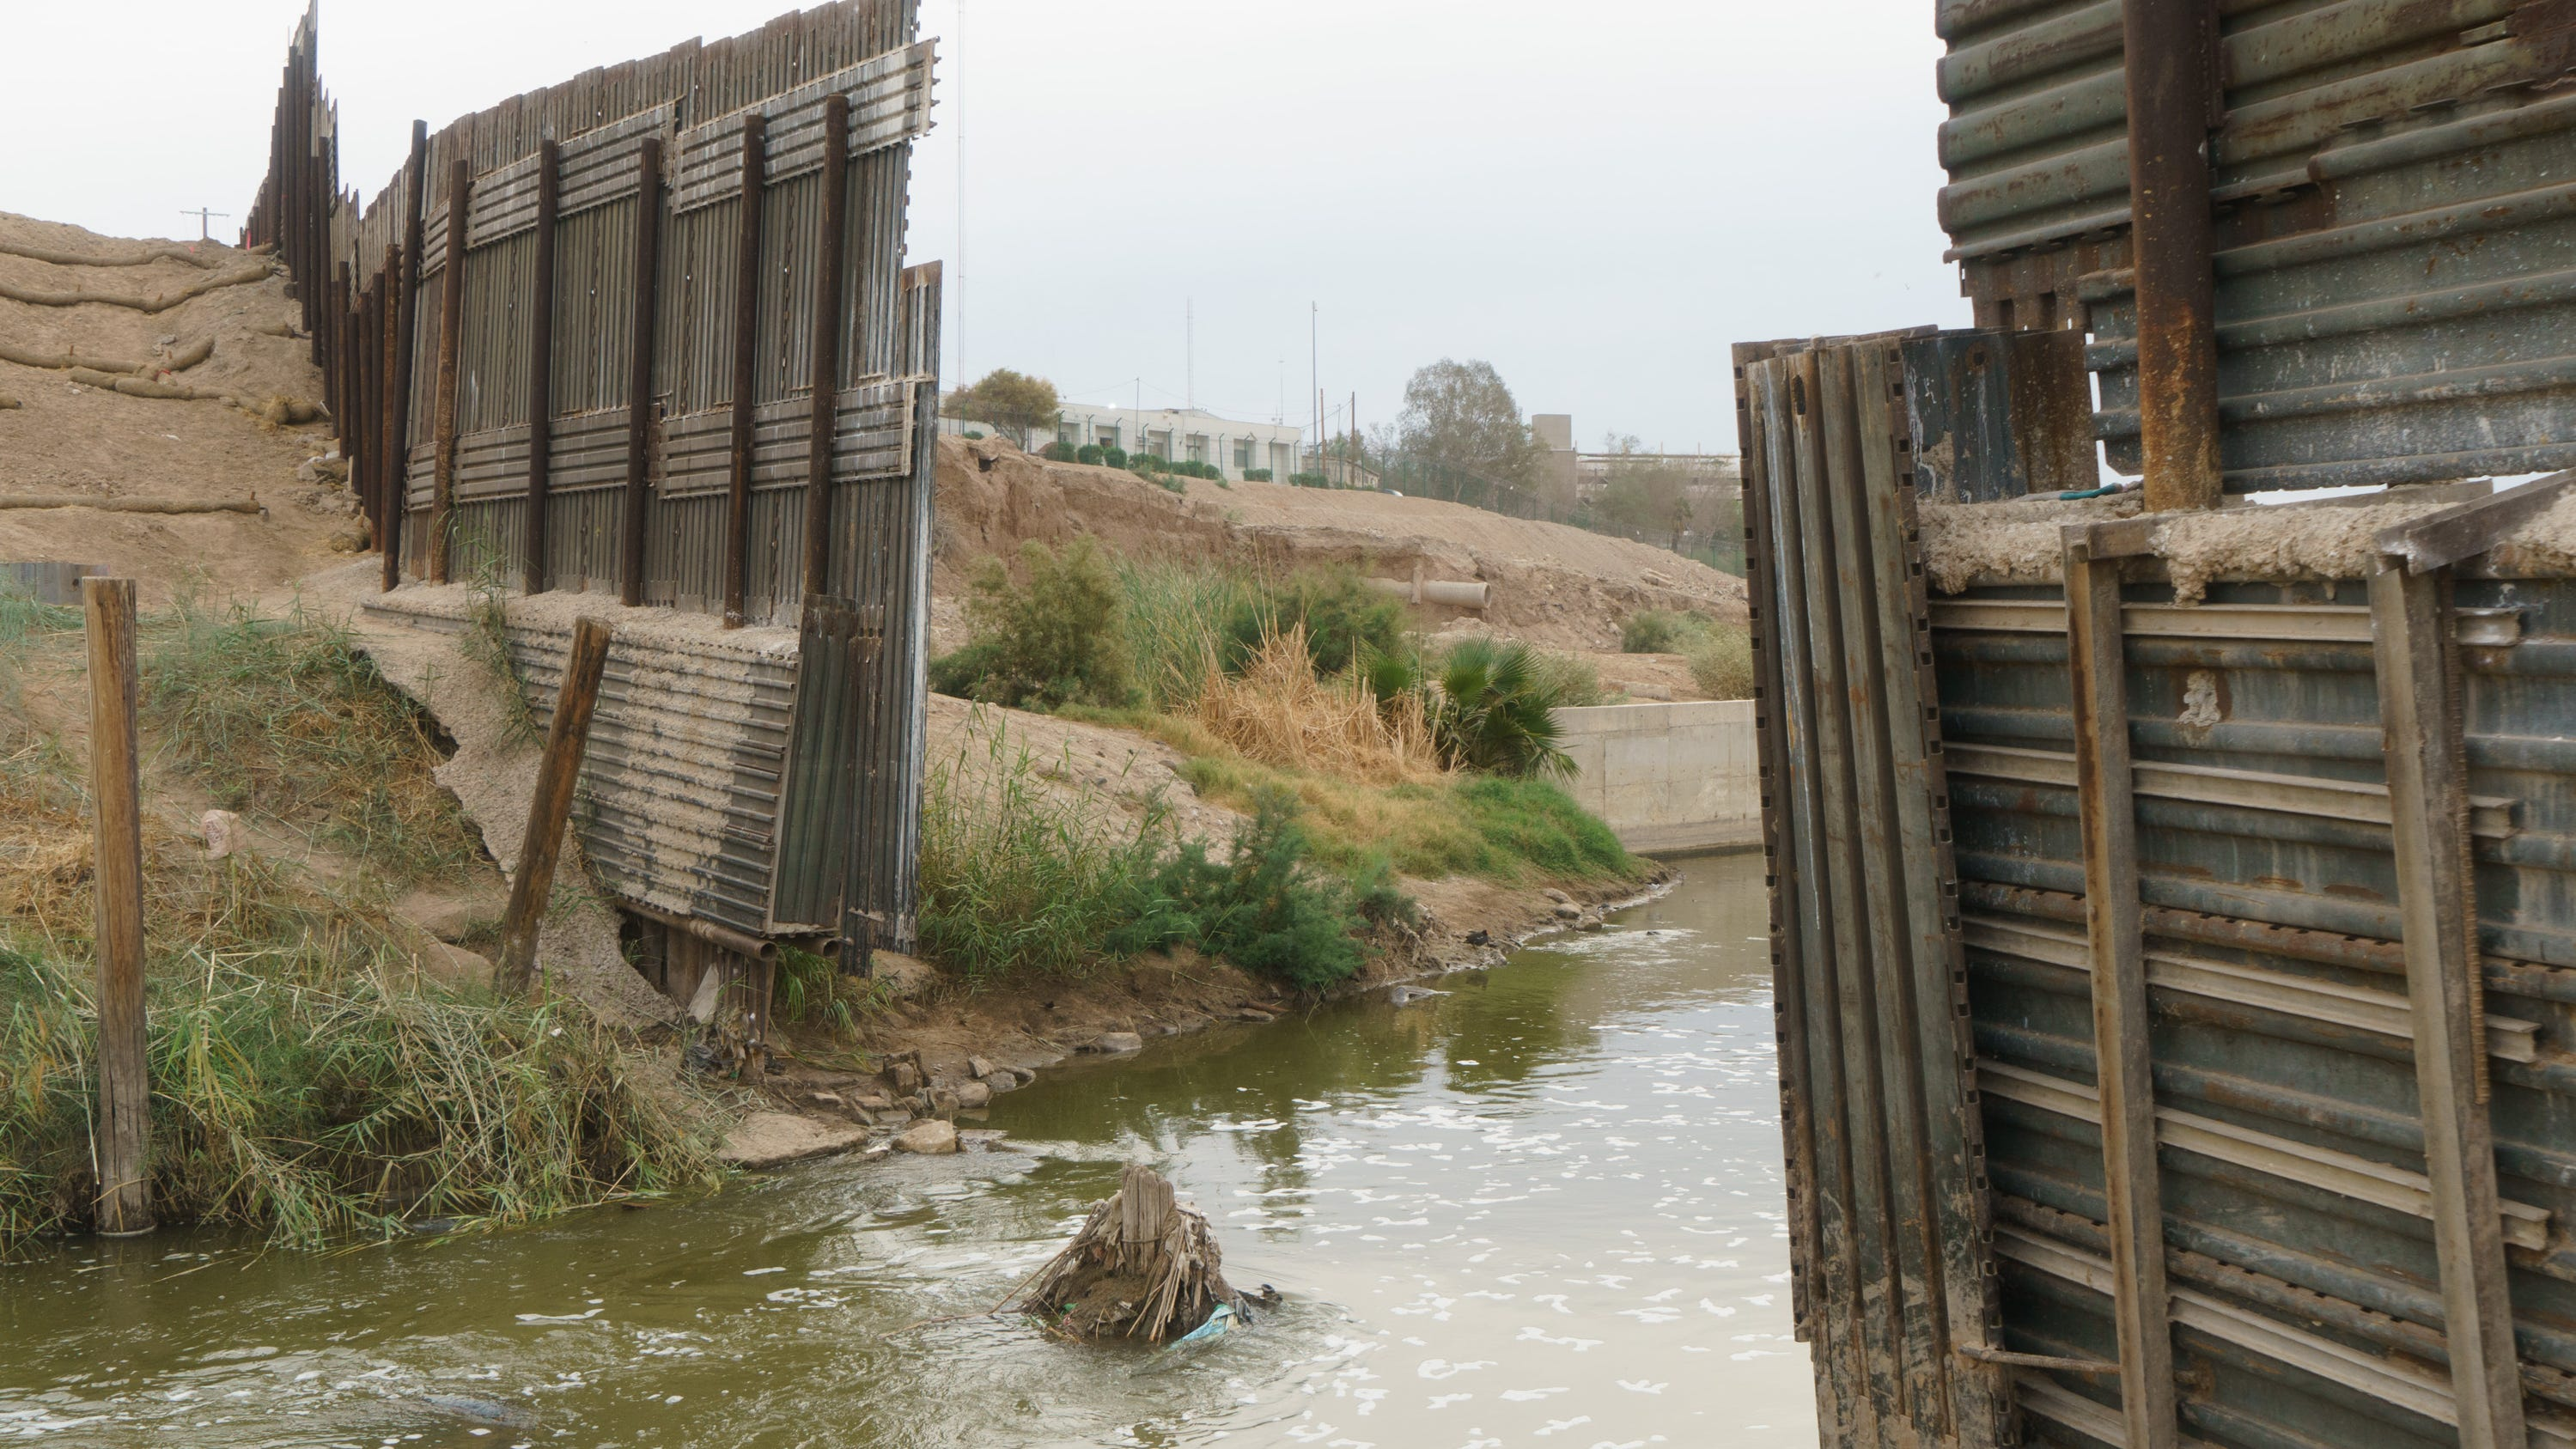 c422acf8a1 The polluted New River poses a hazard on U.S.-Mexico border